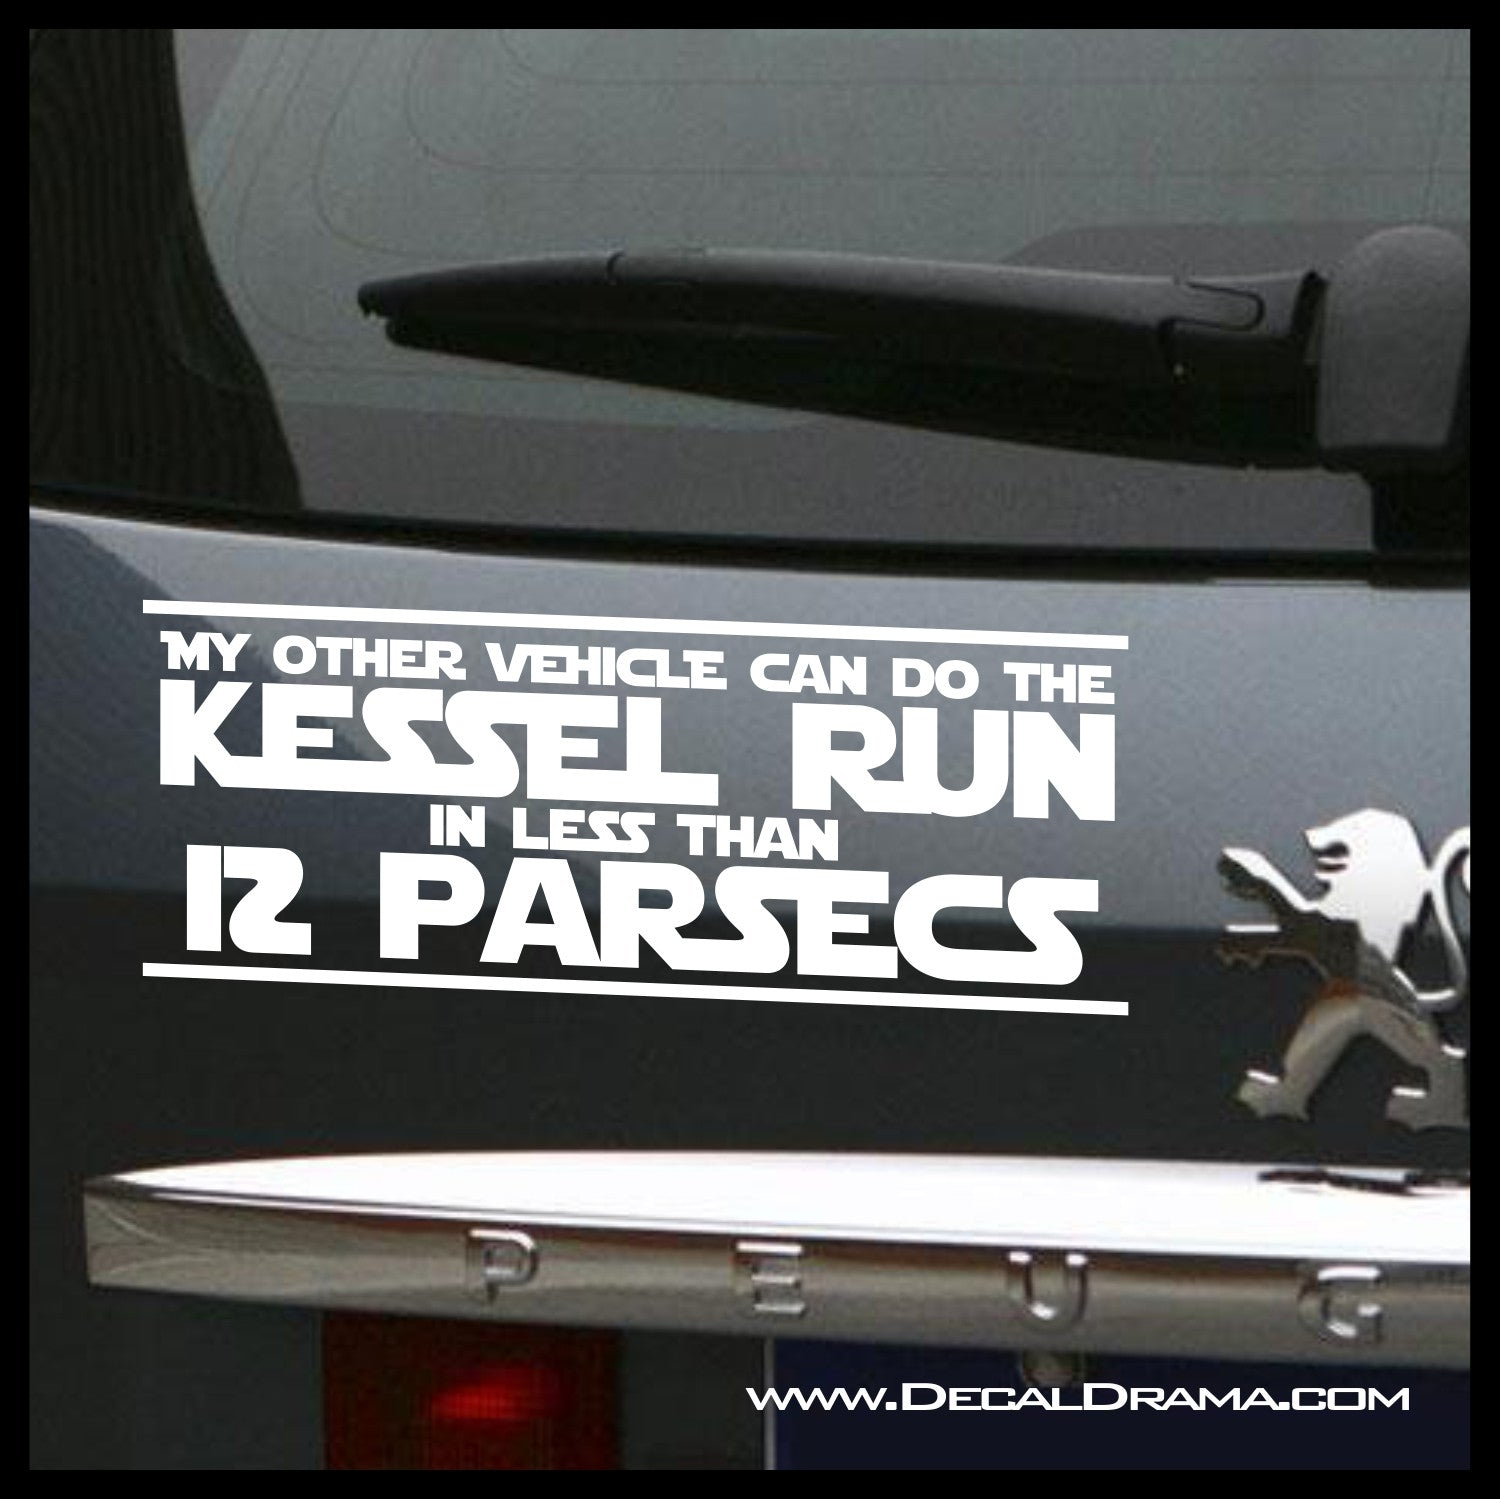 Kessel Run In Less Then 12 Parsecs, Star Wars-Inspired Fan Art Vinyl Wall Decal